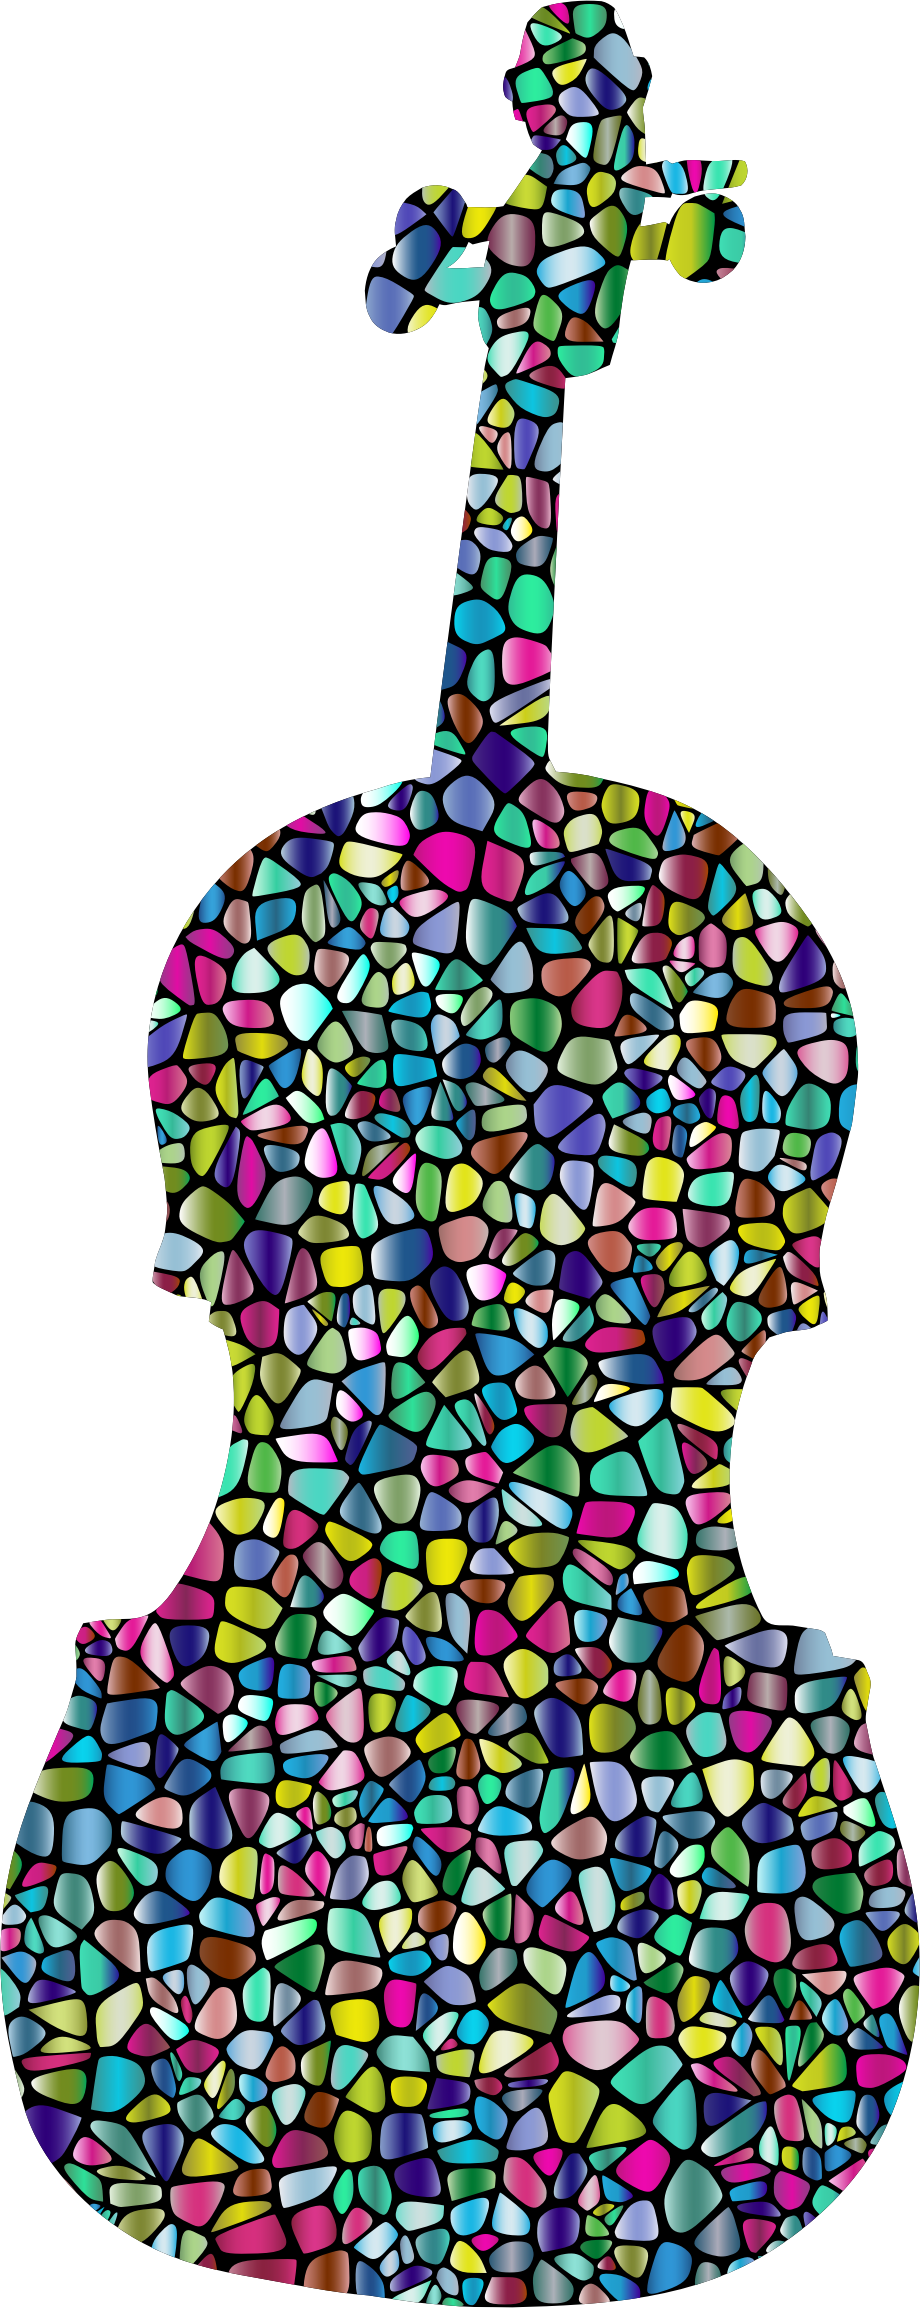 Polyprismatic Tiled Violin Silhouette With Background by GDJ